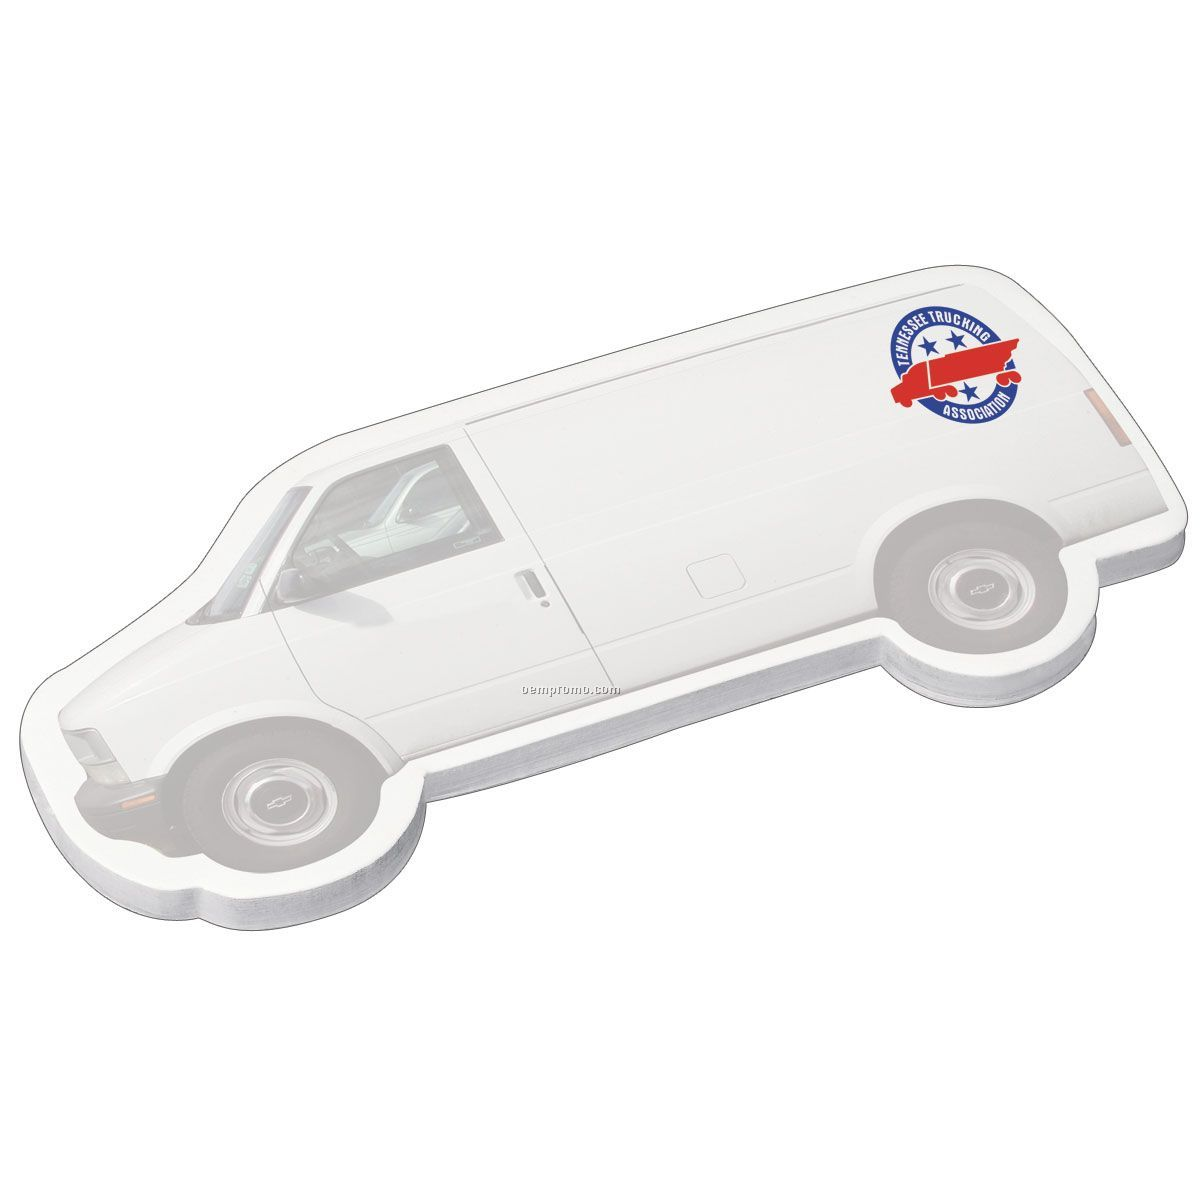 Earth Friendly Adhesive Notes/Van Shape - 25 Sheets